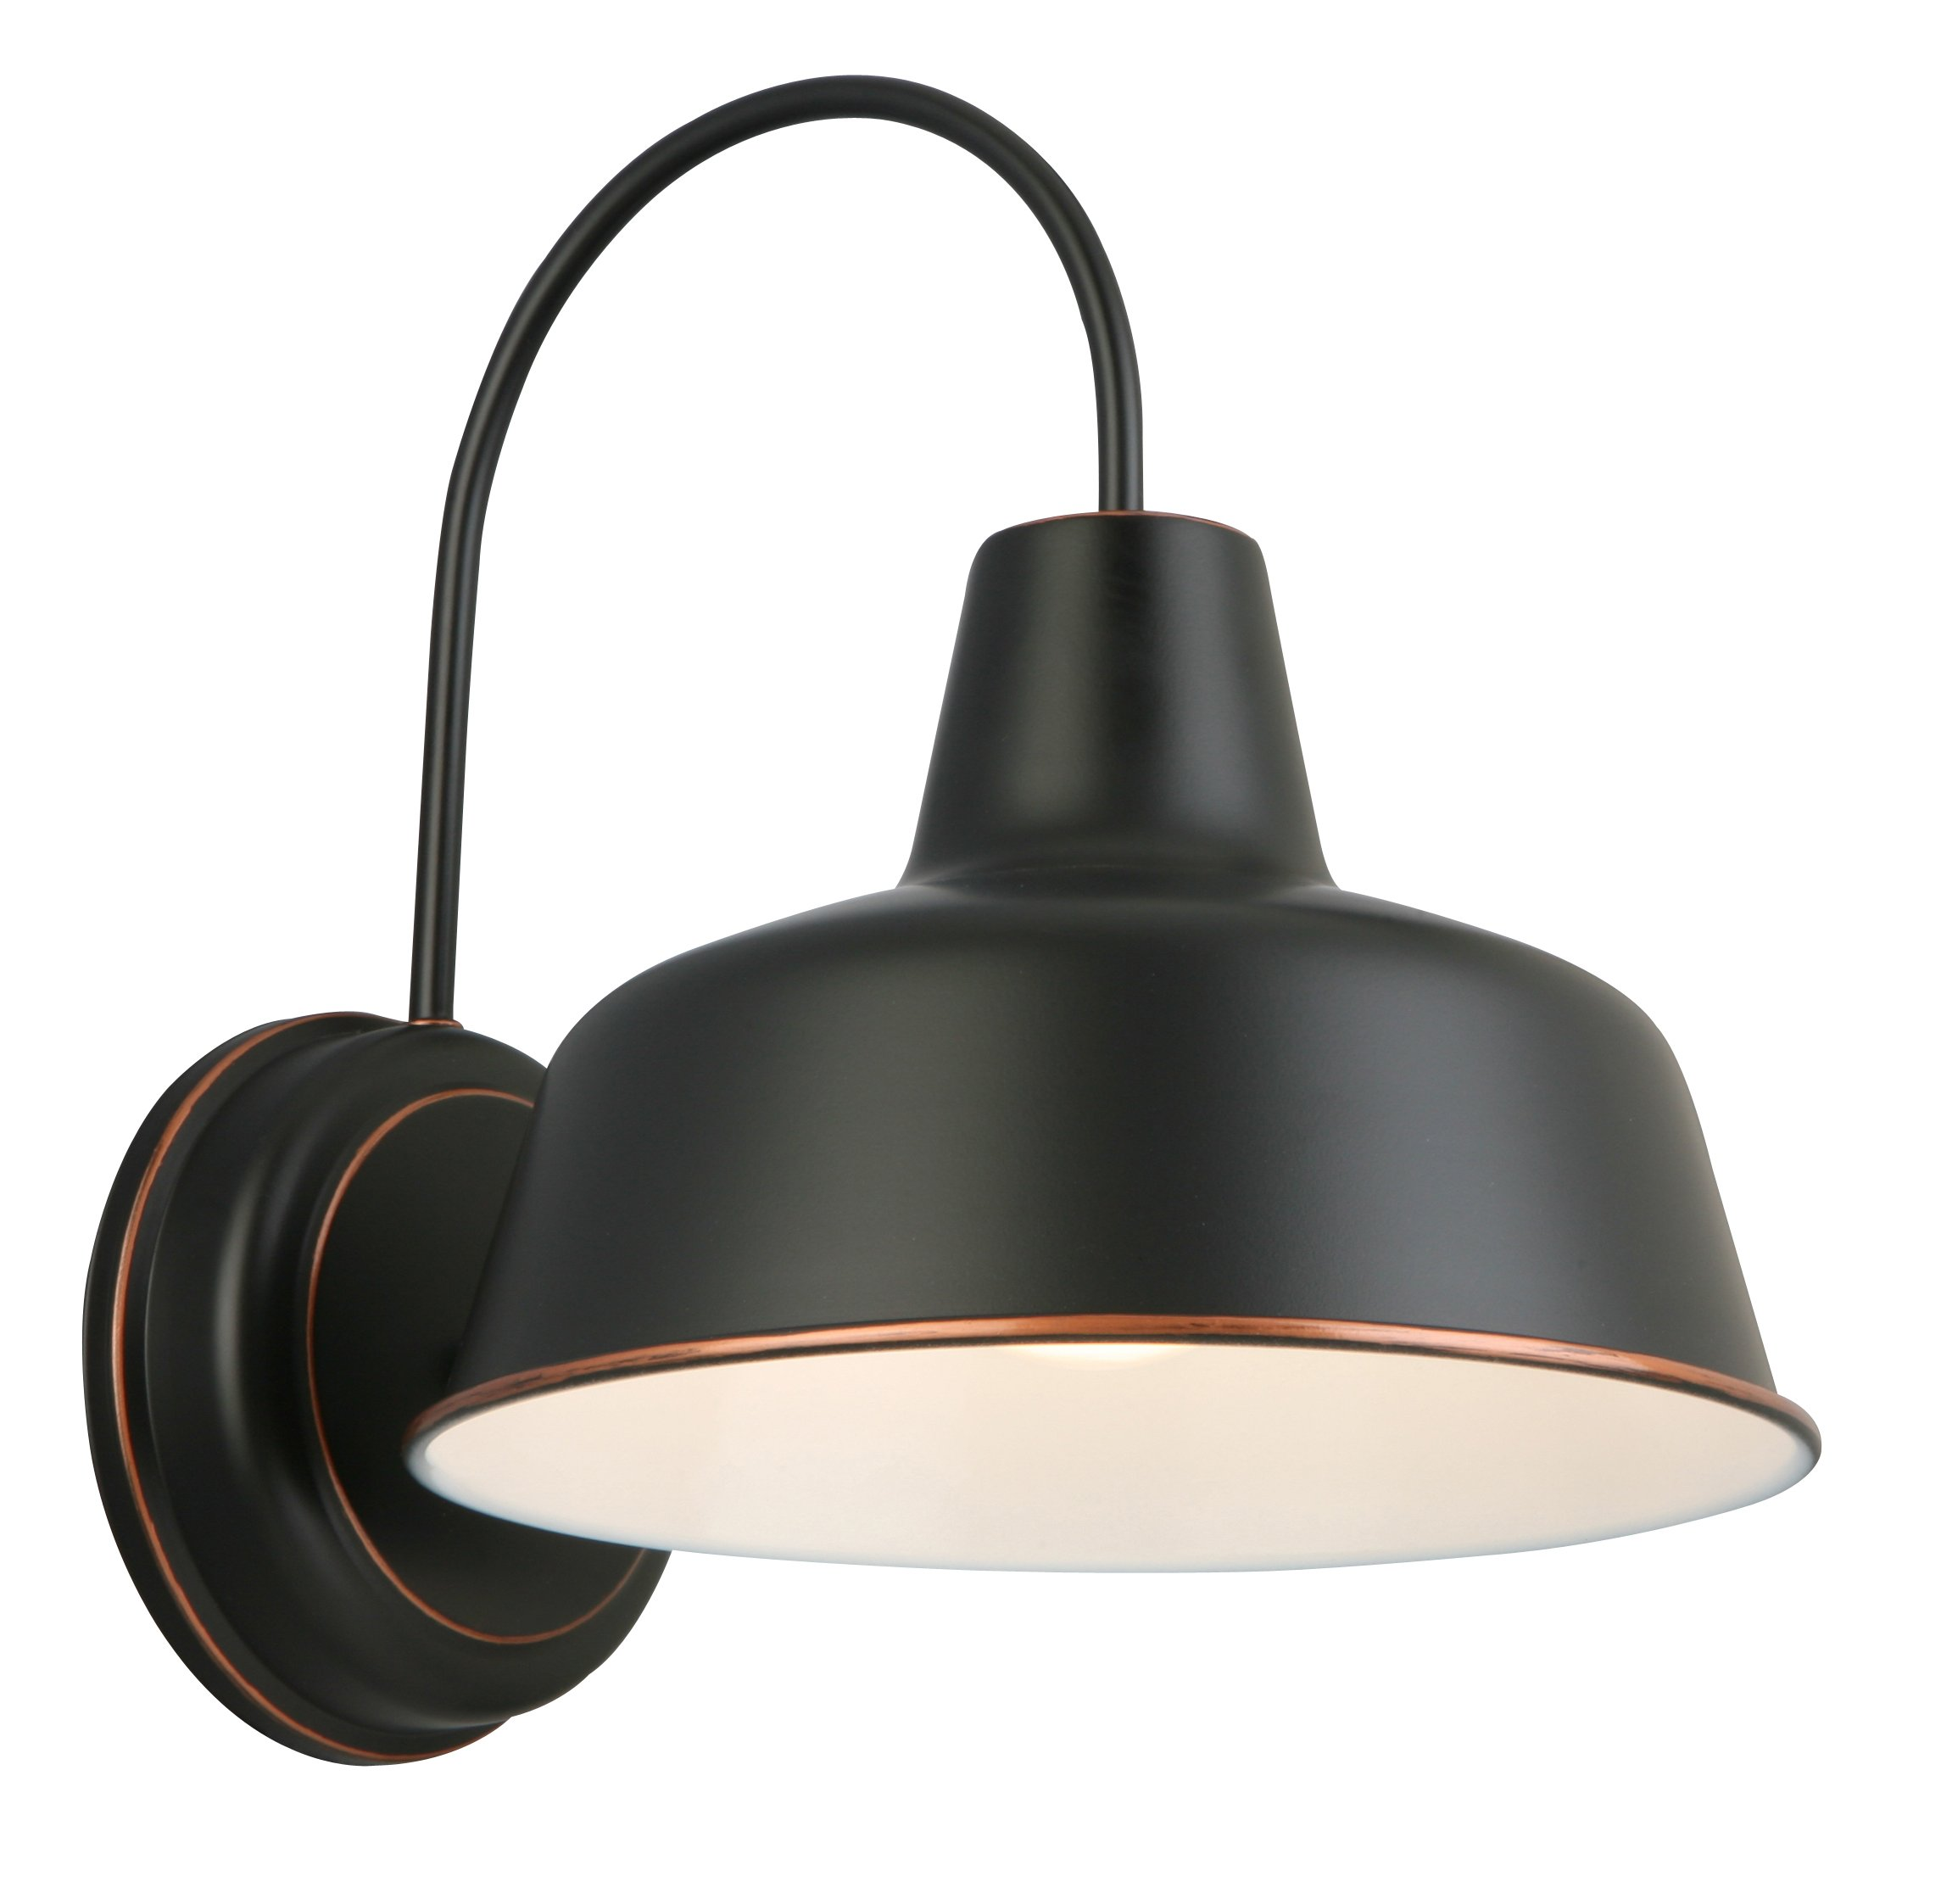 Design House 579375 Mason 1 Indoor/Outdoor Wall Light, 10'', Oil Rubbed Bronze